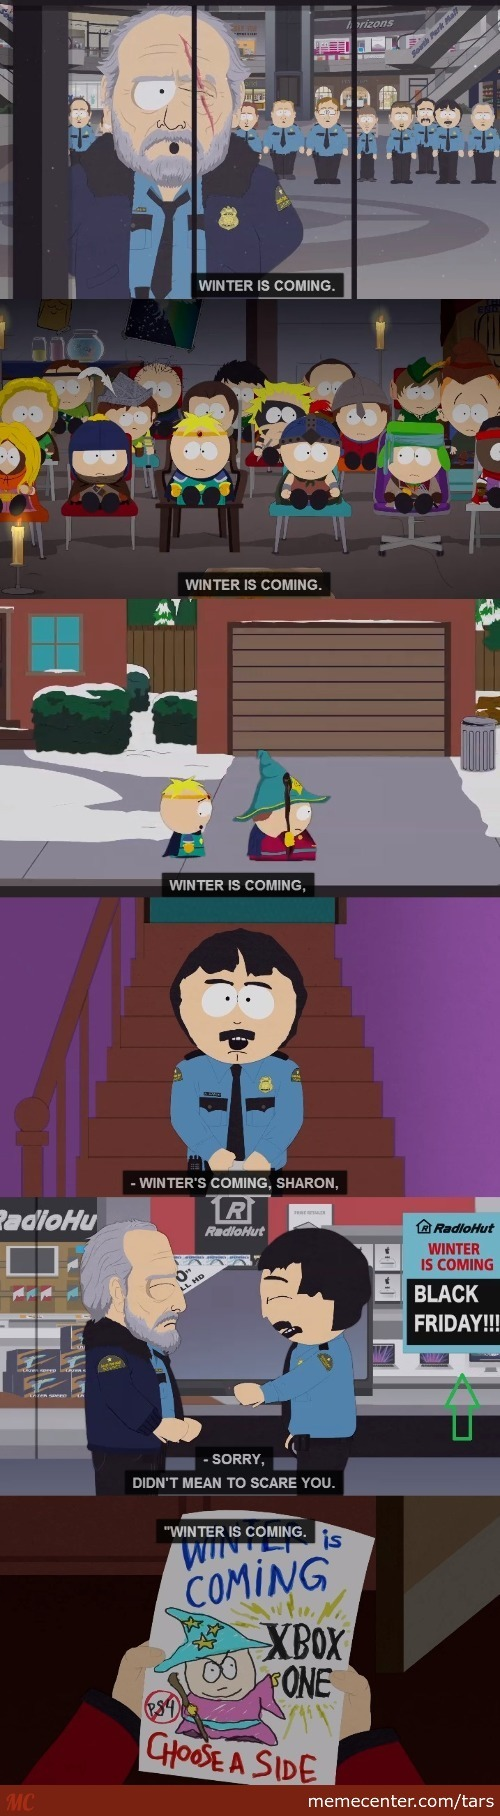 South Park Goes Game Of Thrones